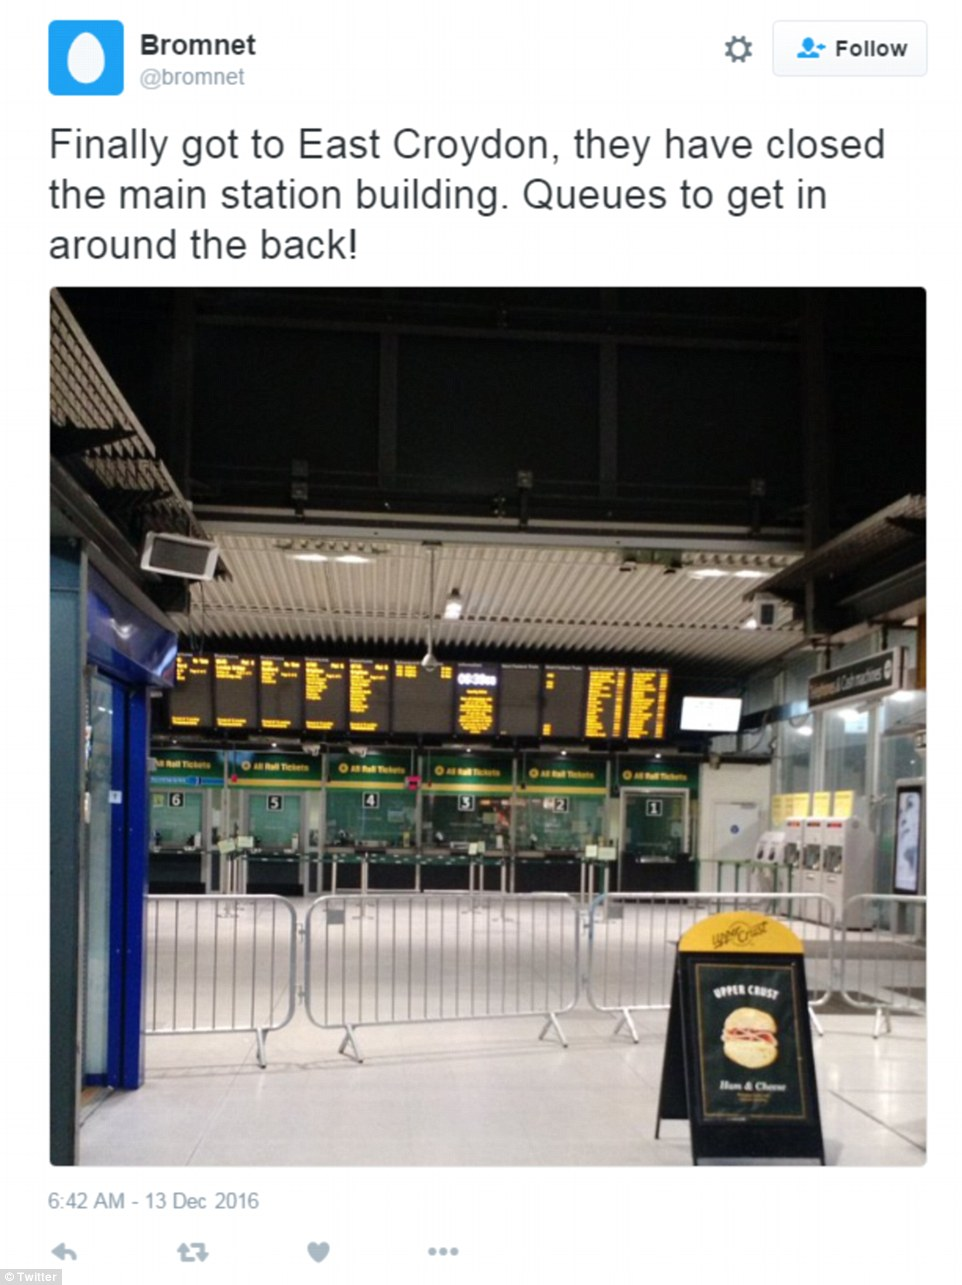 The main station building at East Croydon, south London was closed in anticipation of the travel chaos this morning, forcing commuters to queue around the back